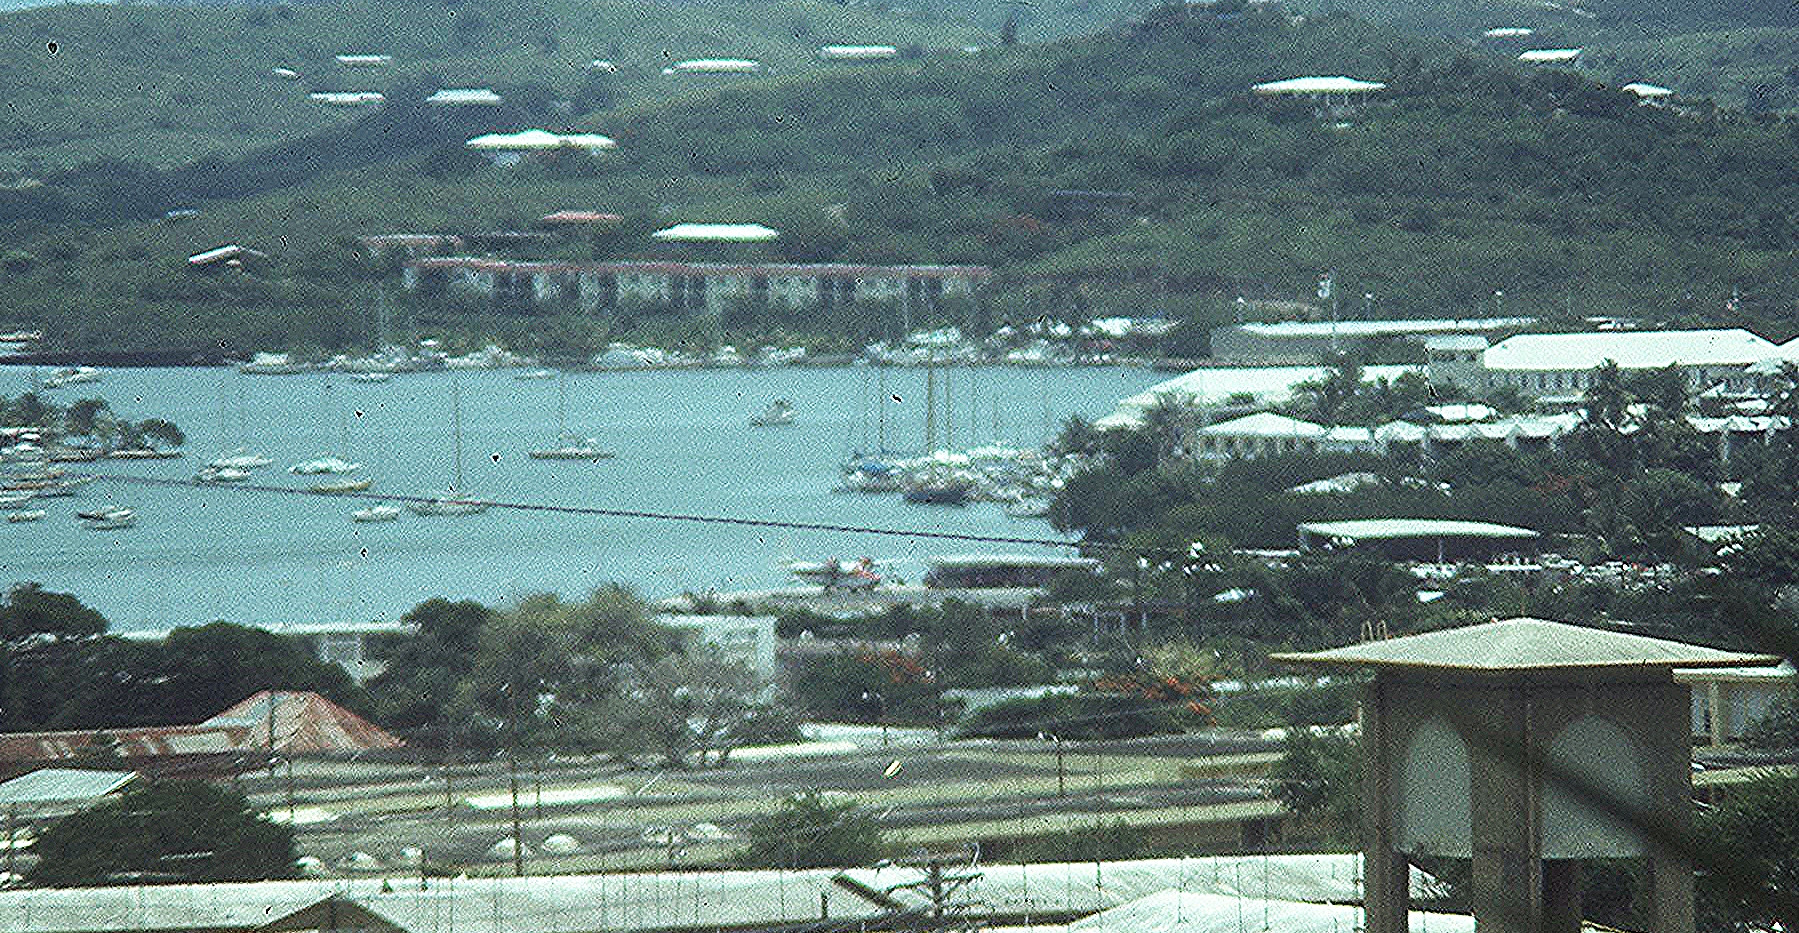 Christiansted, St. Croix - AAB Seaplane Ramp can be seen in the center.